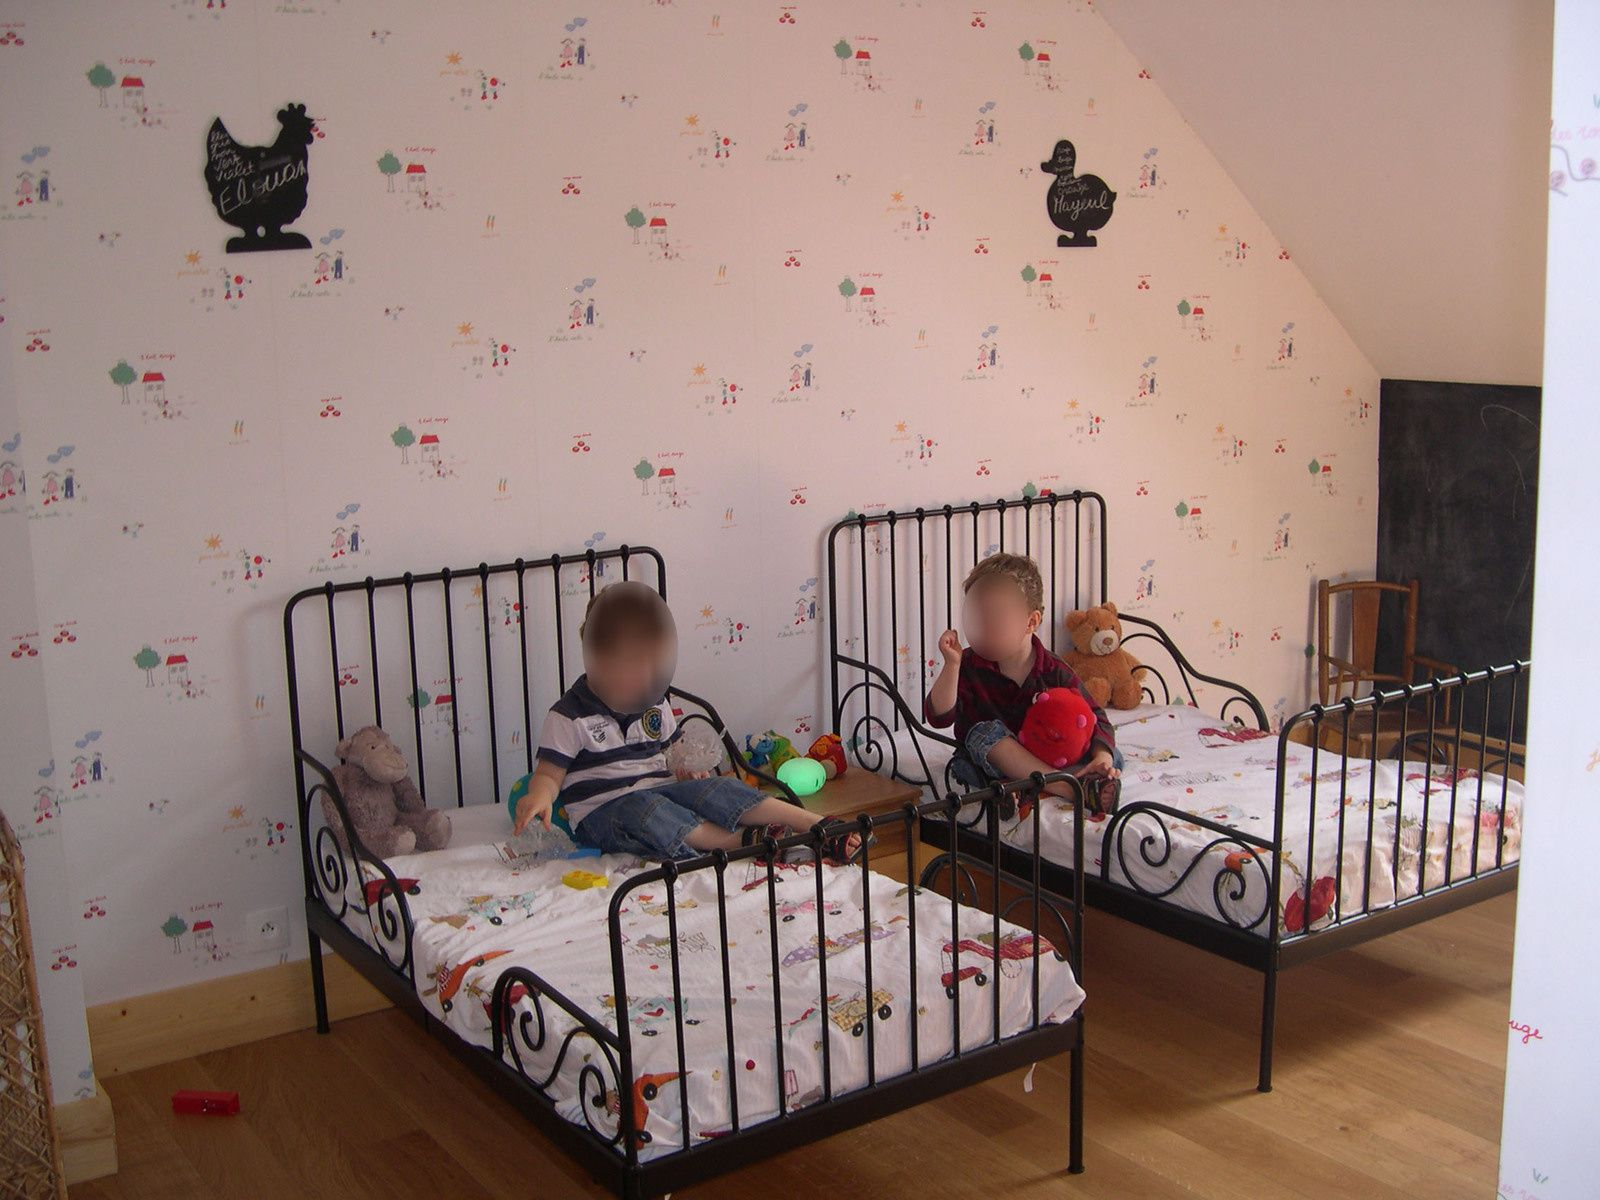 chambre d enfant ikea une suspension originale pour la. Black Bedroom Furniture Sets. Home Design Ideas